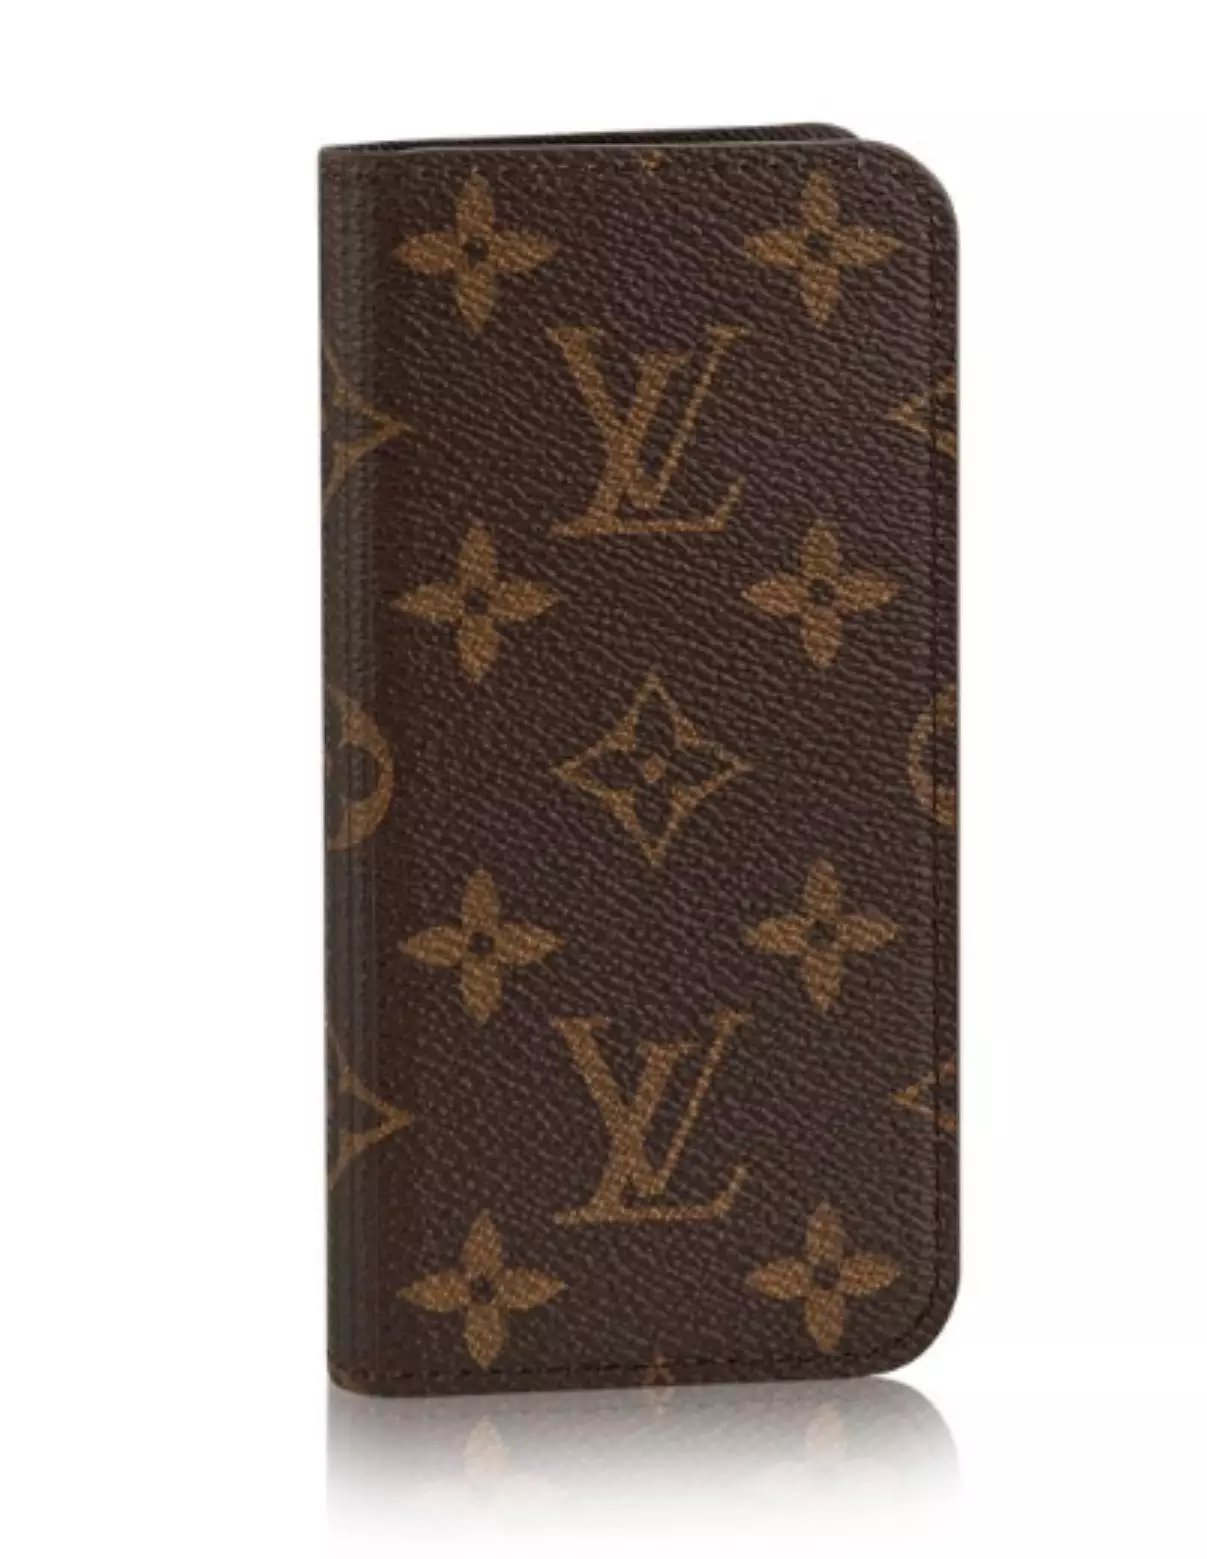 cool iphone 8 Plus covers cool iphone 8 Plus cases for sale Louis Vuitton iphone 8 Plus case cheap phone covers iPhone 8 Plus cass where to buy phone cases online custom made cases for iphone 8 Plus make an iphone case mophie juice pack for iPhone 8 Plus